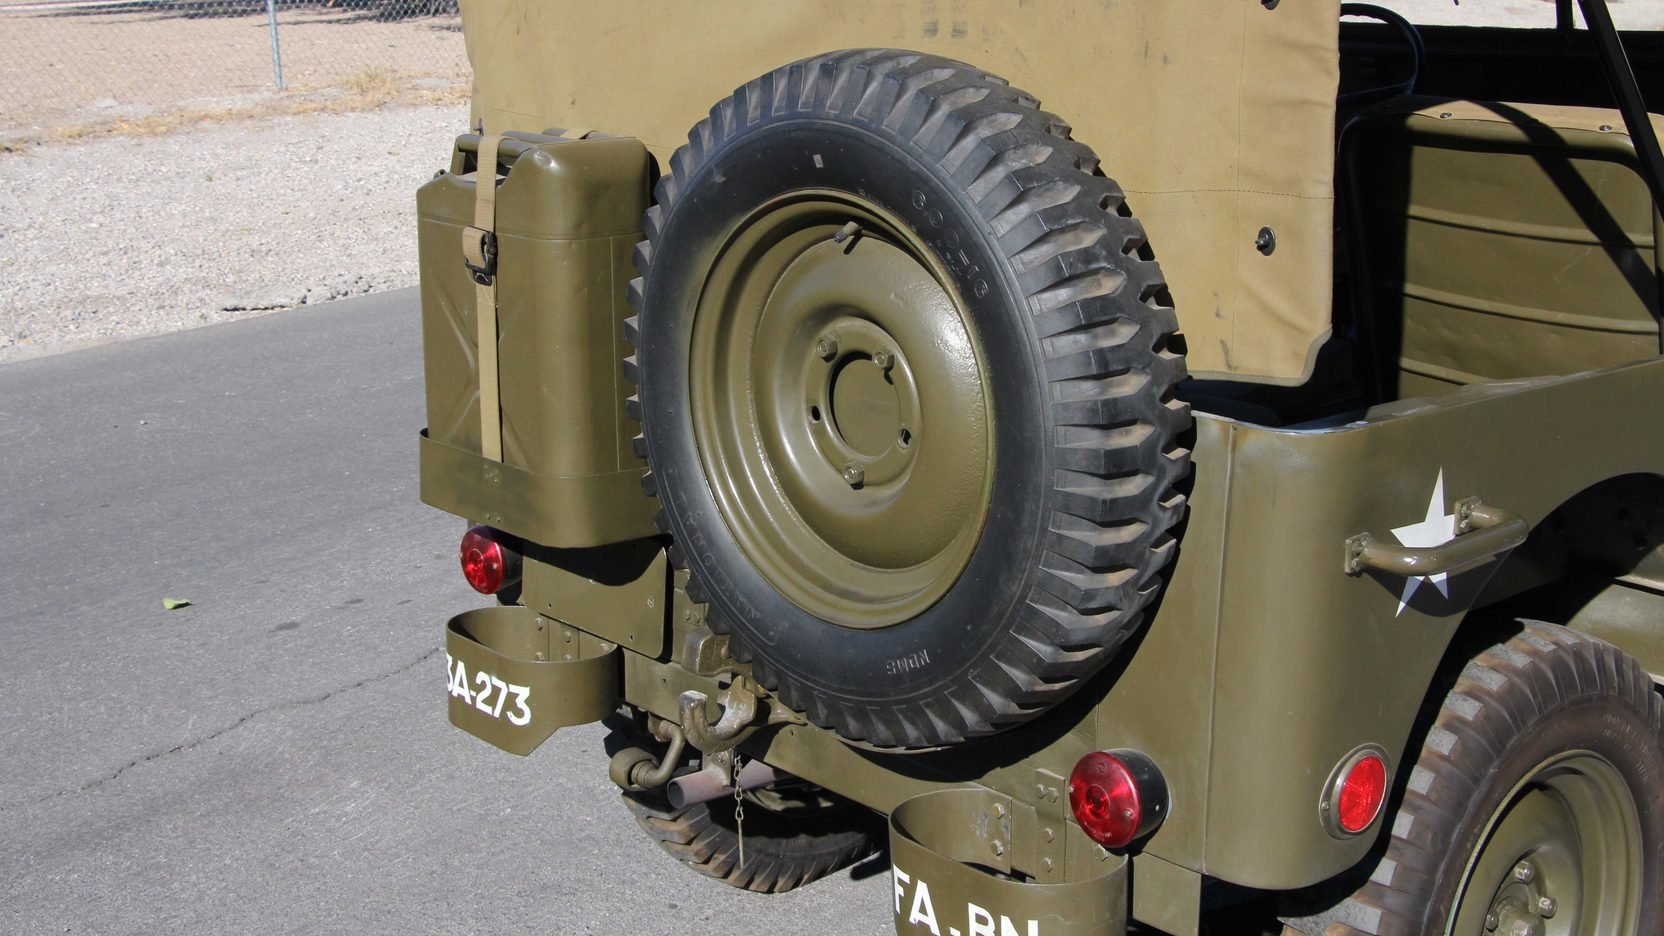 1948 Willys Military Jeep spare tire